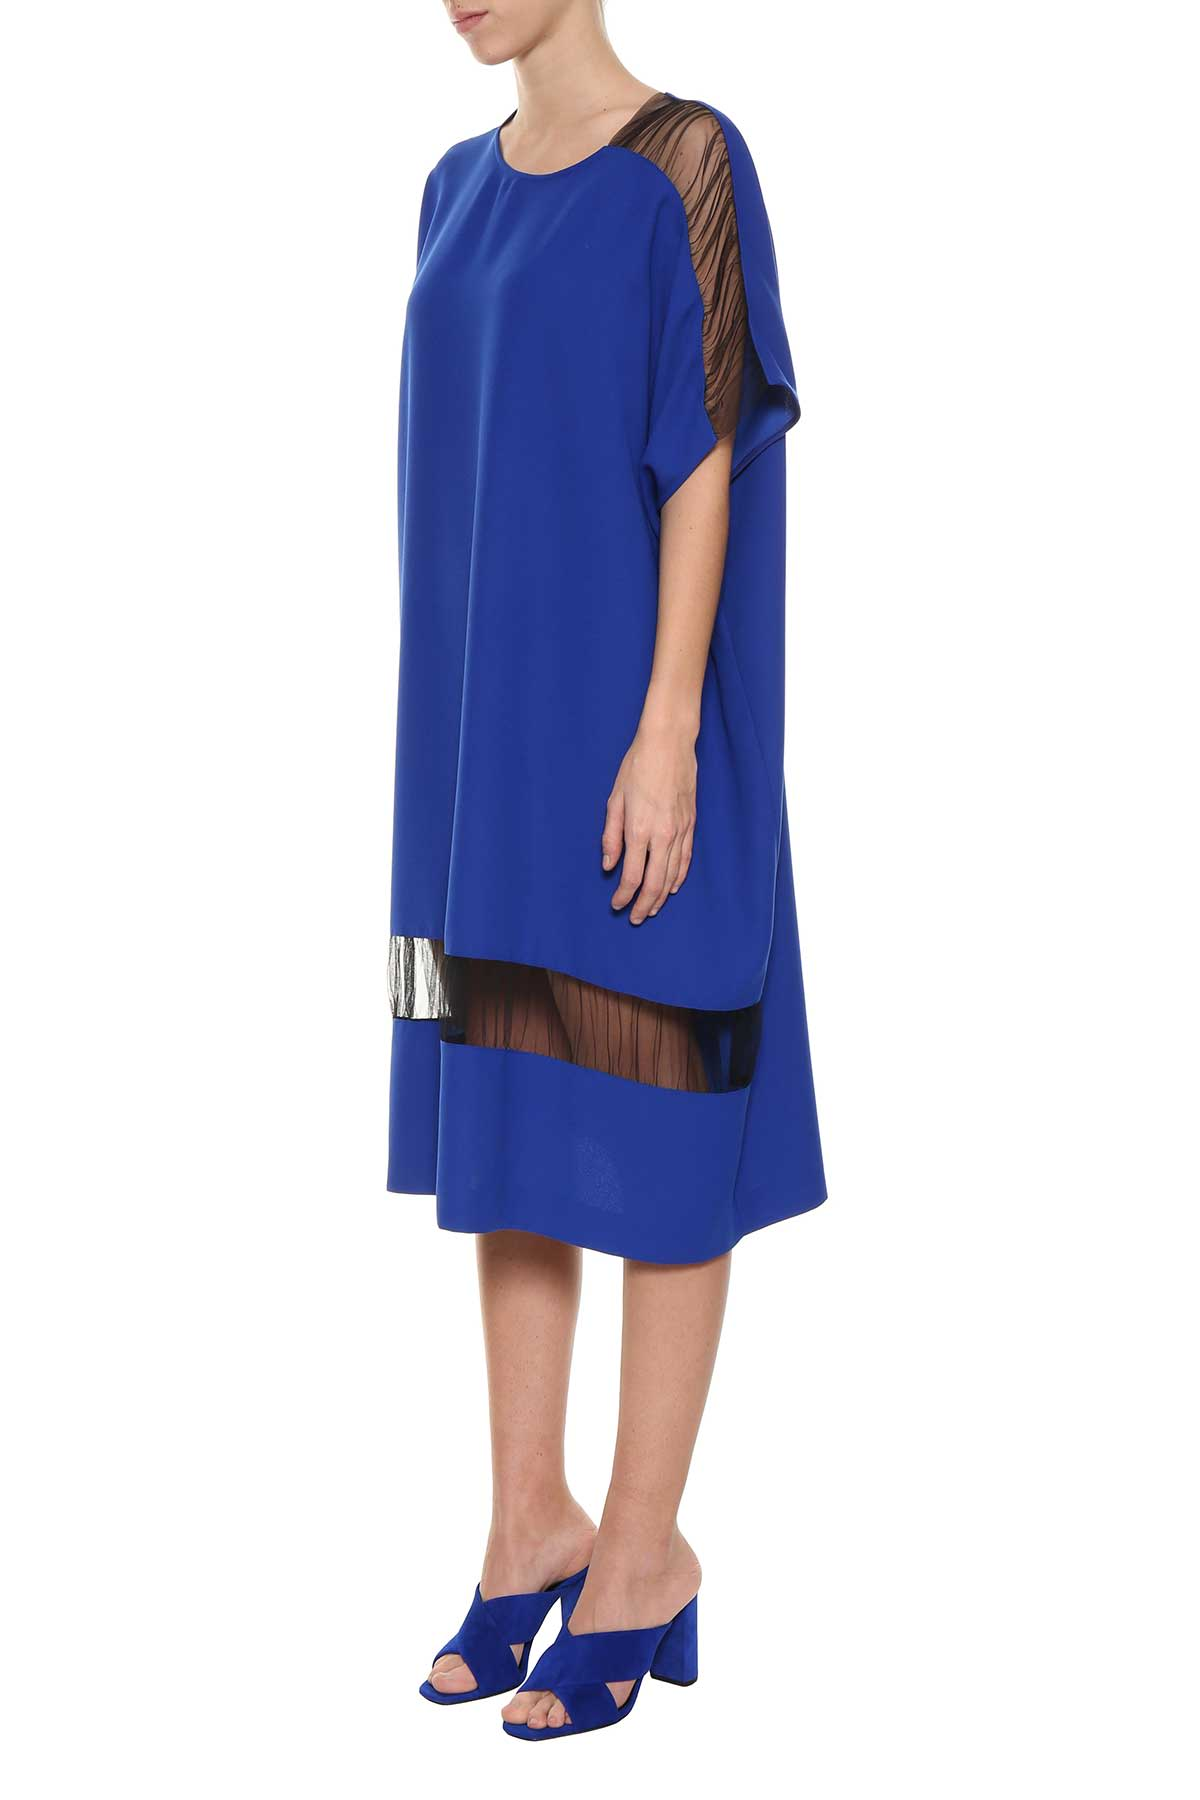 Maison Margiela Oversized Mesh Panel Dress ...